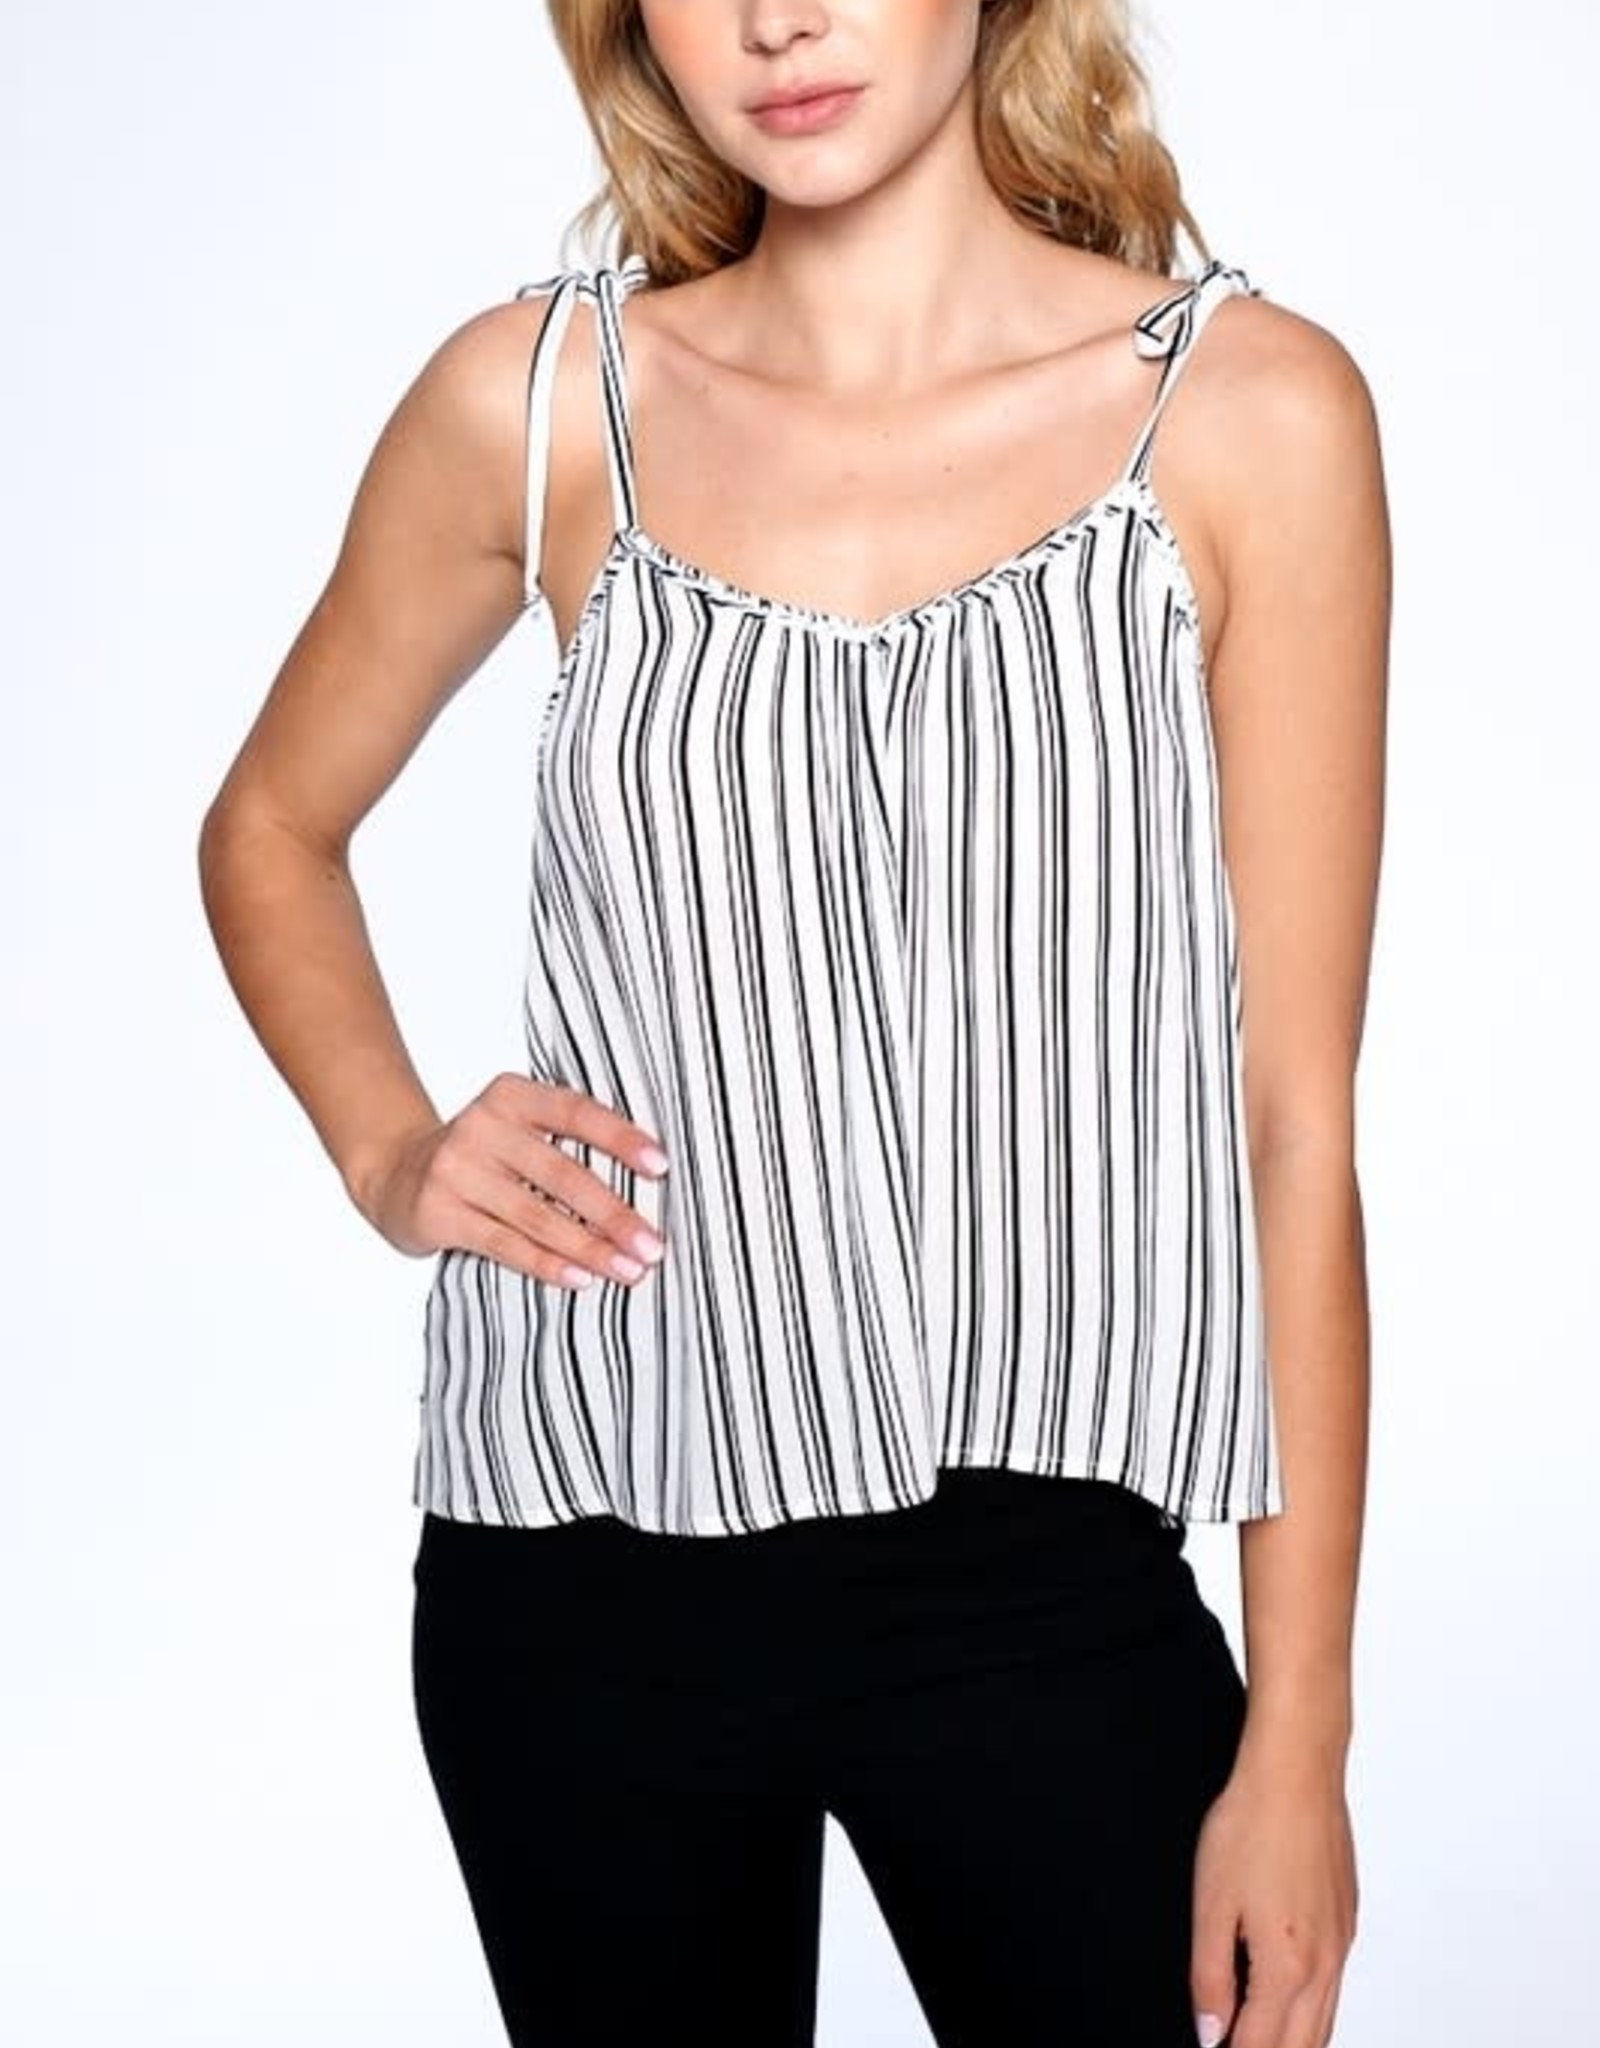 Oleanders Boutique cheyenne stripped cami